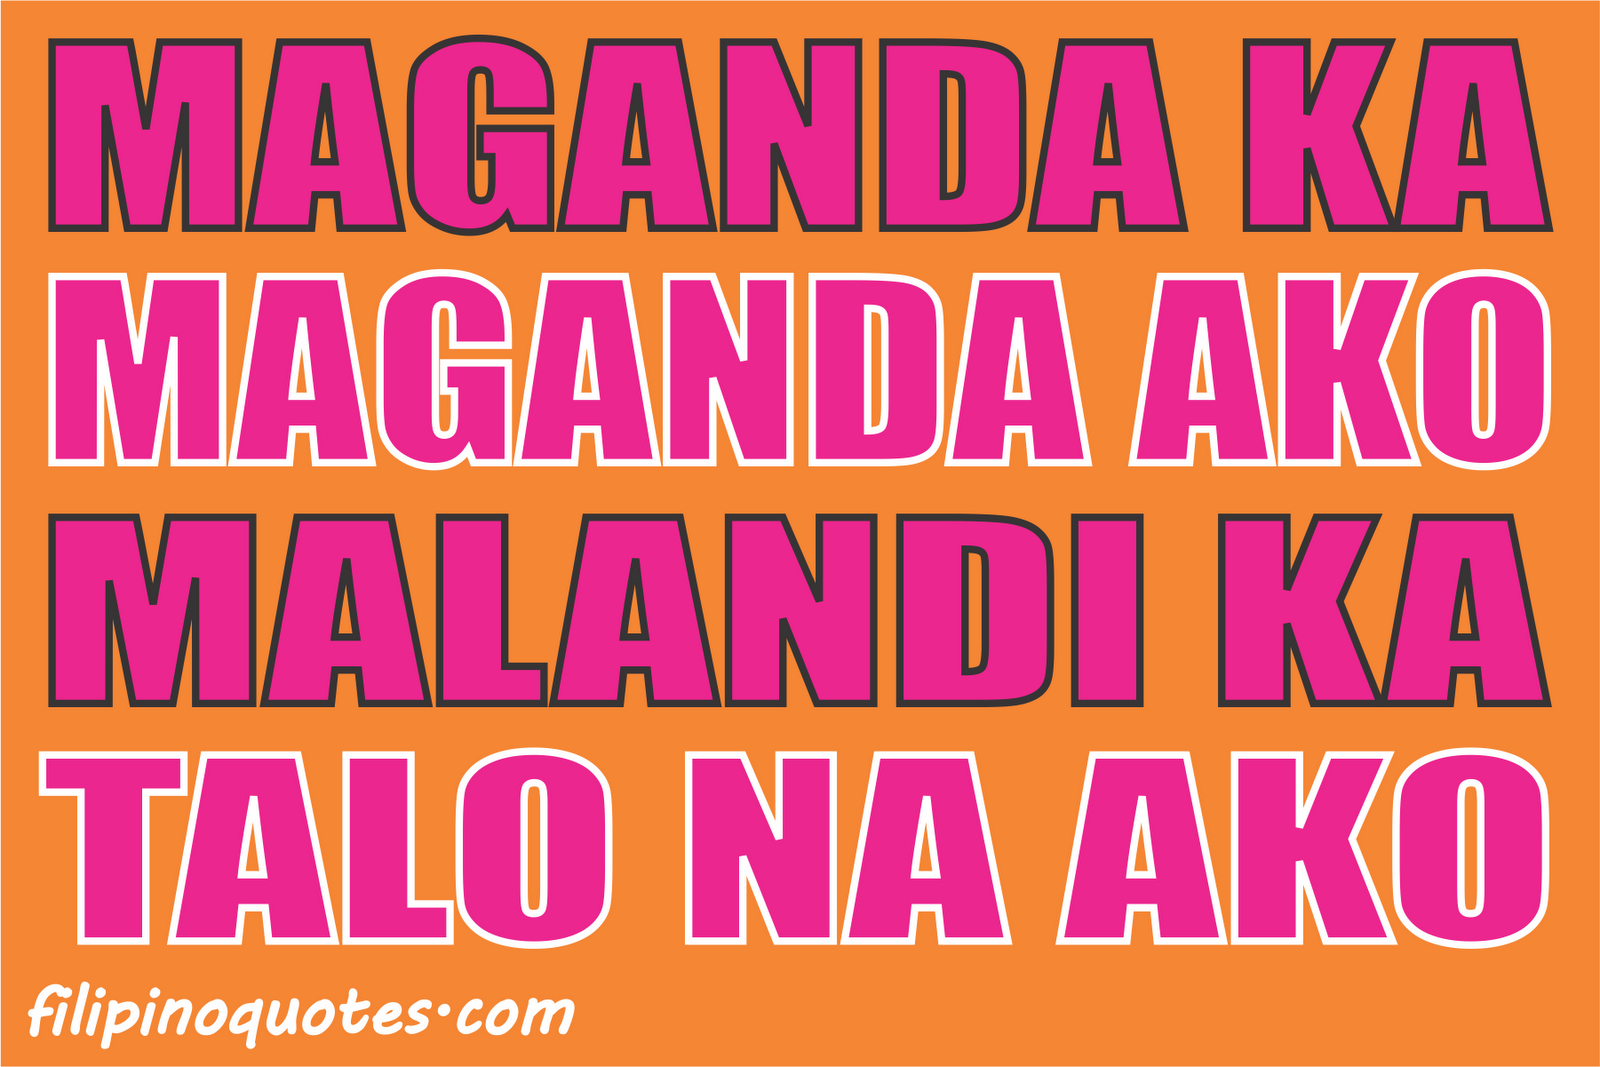 Funny Bitter Love Quotes Tagalog Images Love Funny Quotes Love